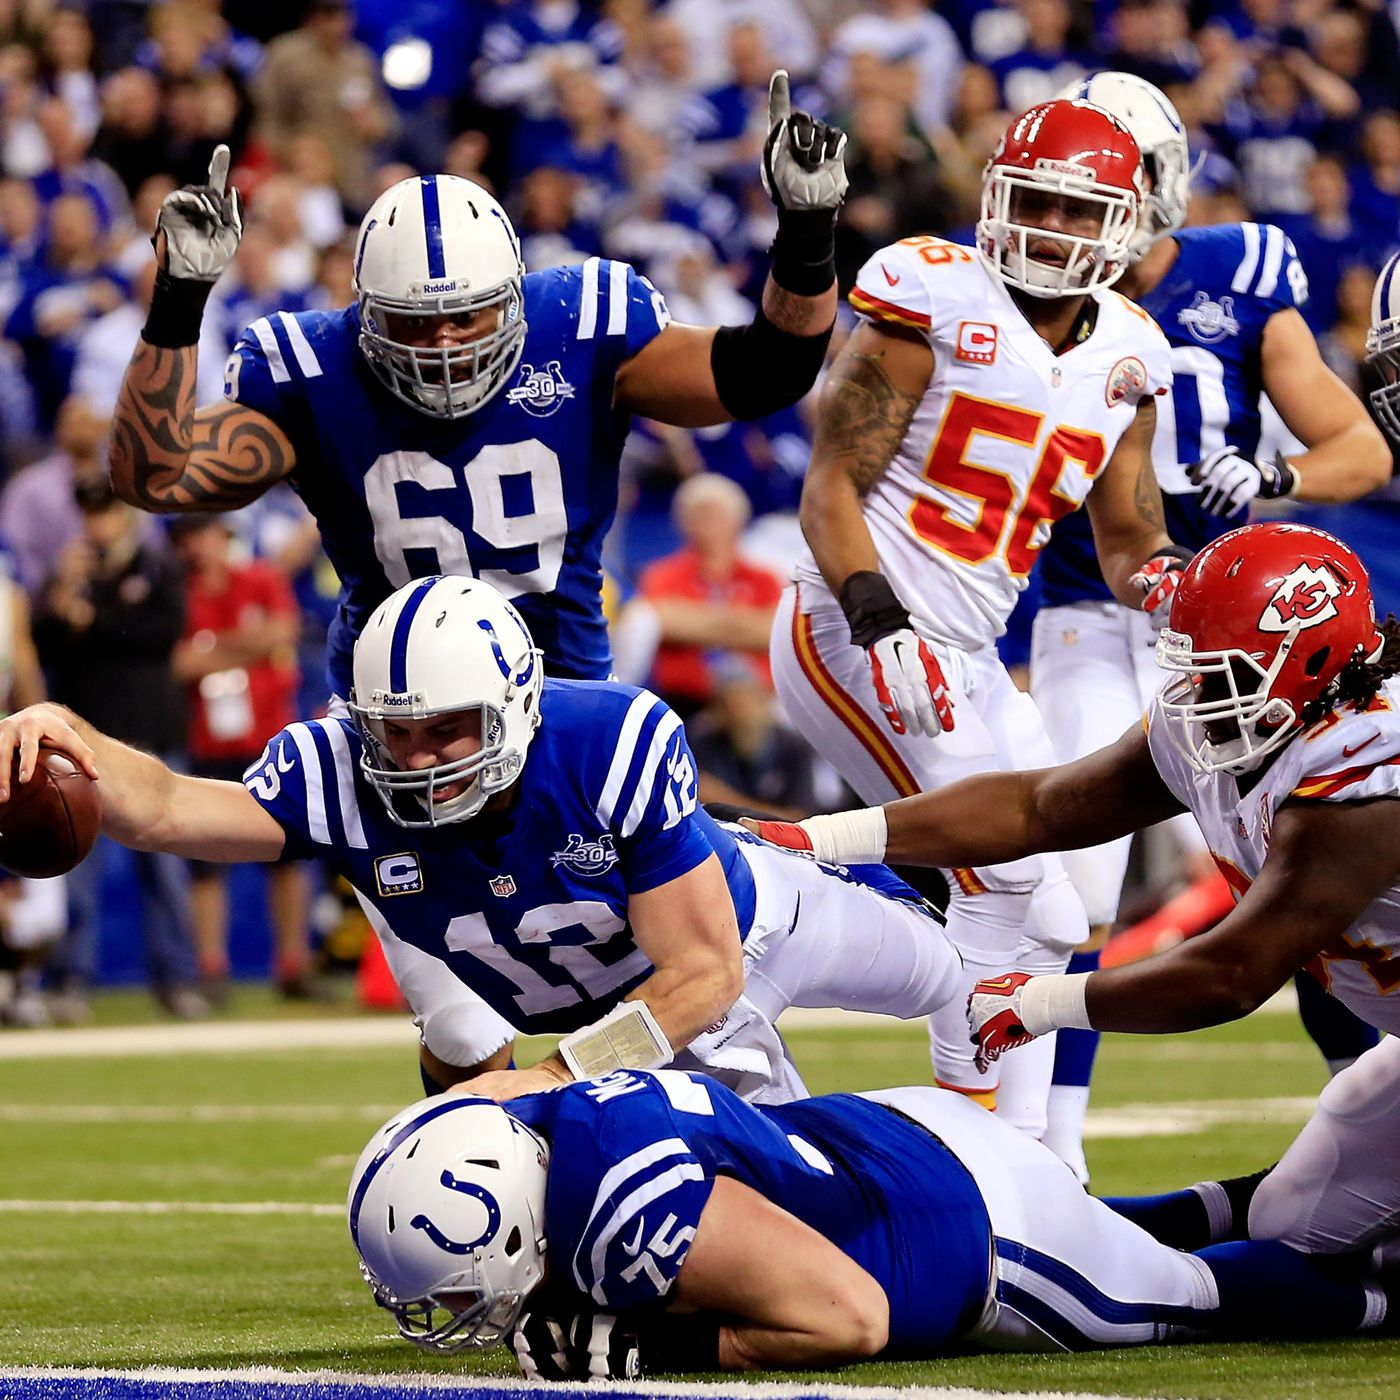 Colts Complete 2nd Largest Comeback In Nfl Playoff History Vs Chiefs Sbnation Com